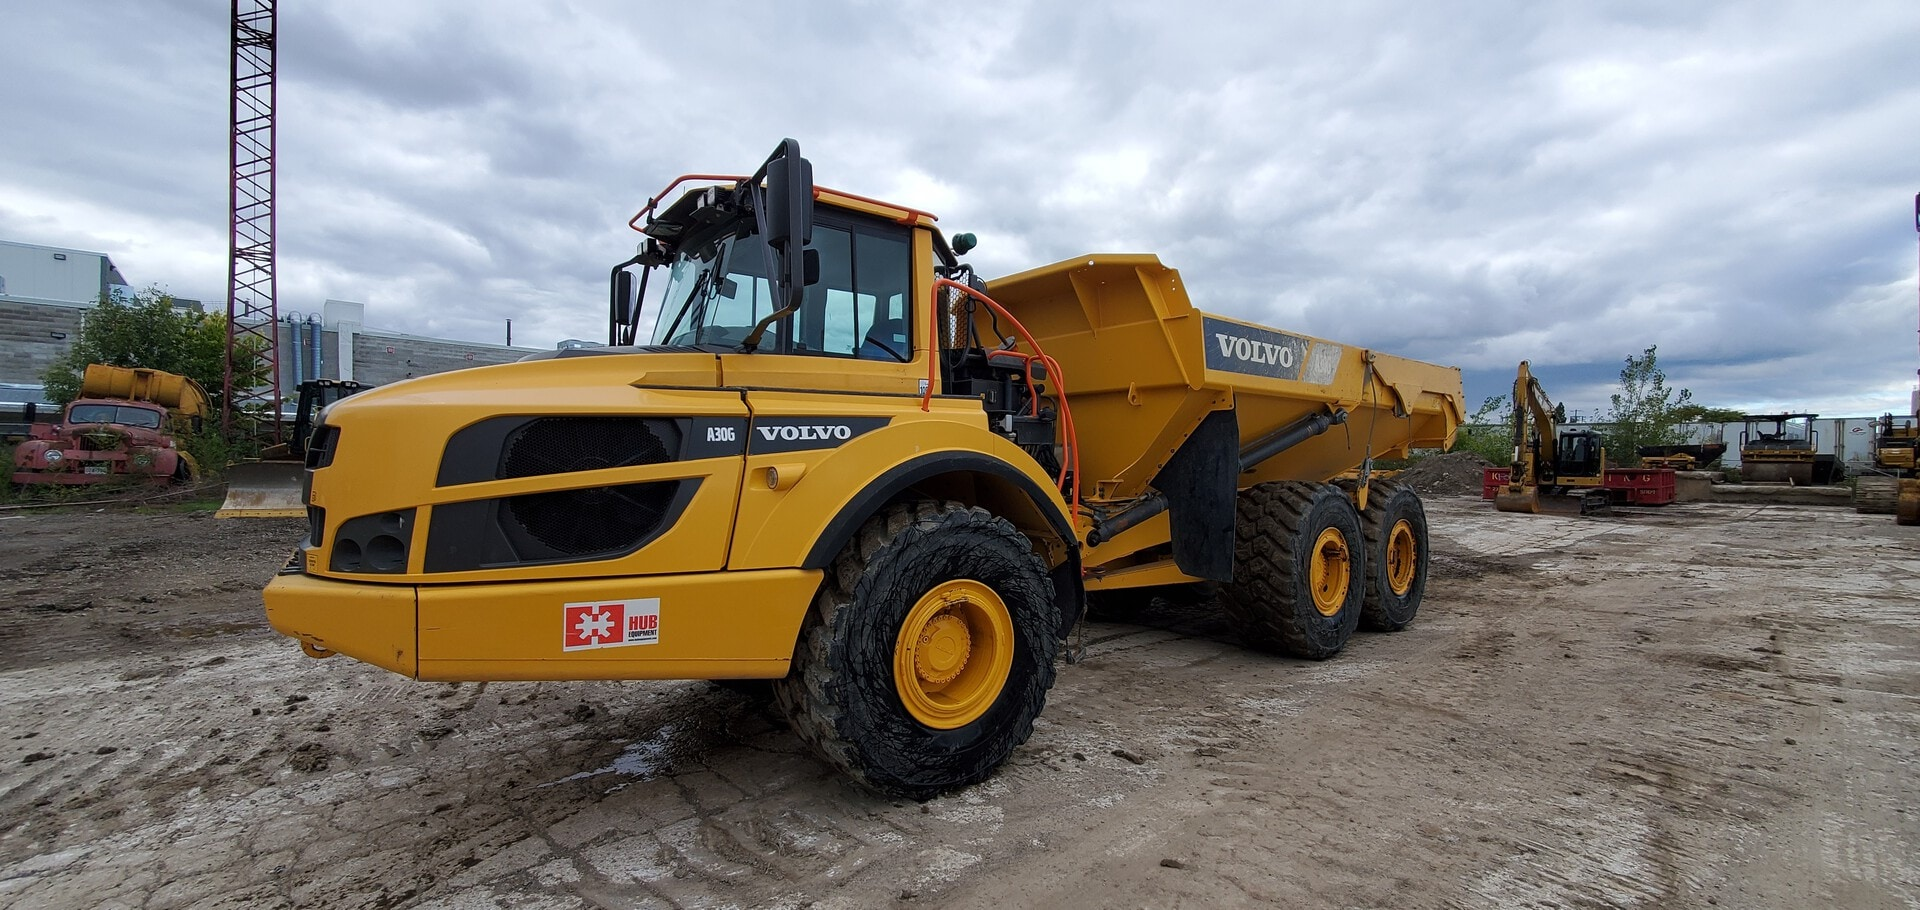 Used, 2016, Volvo, A30G, Off-Highway Trucks